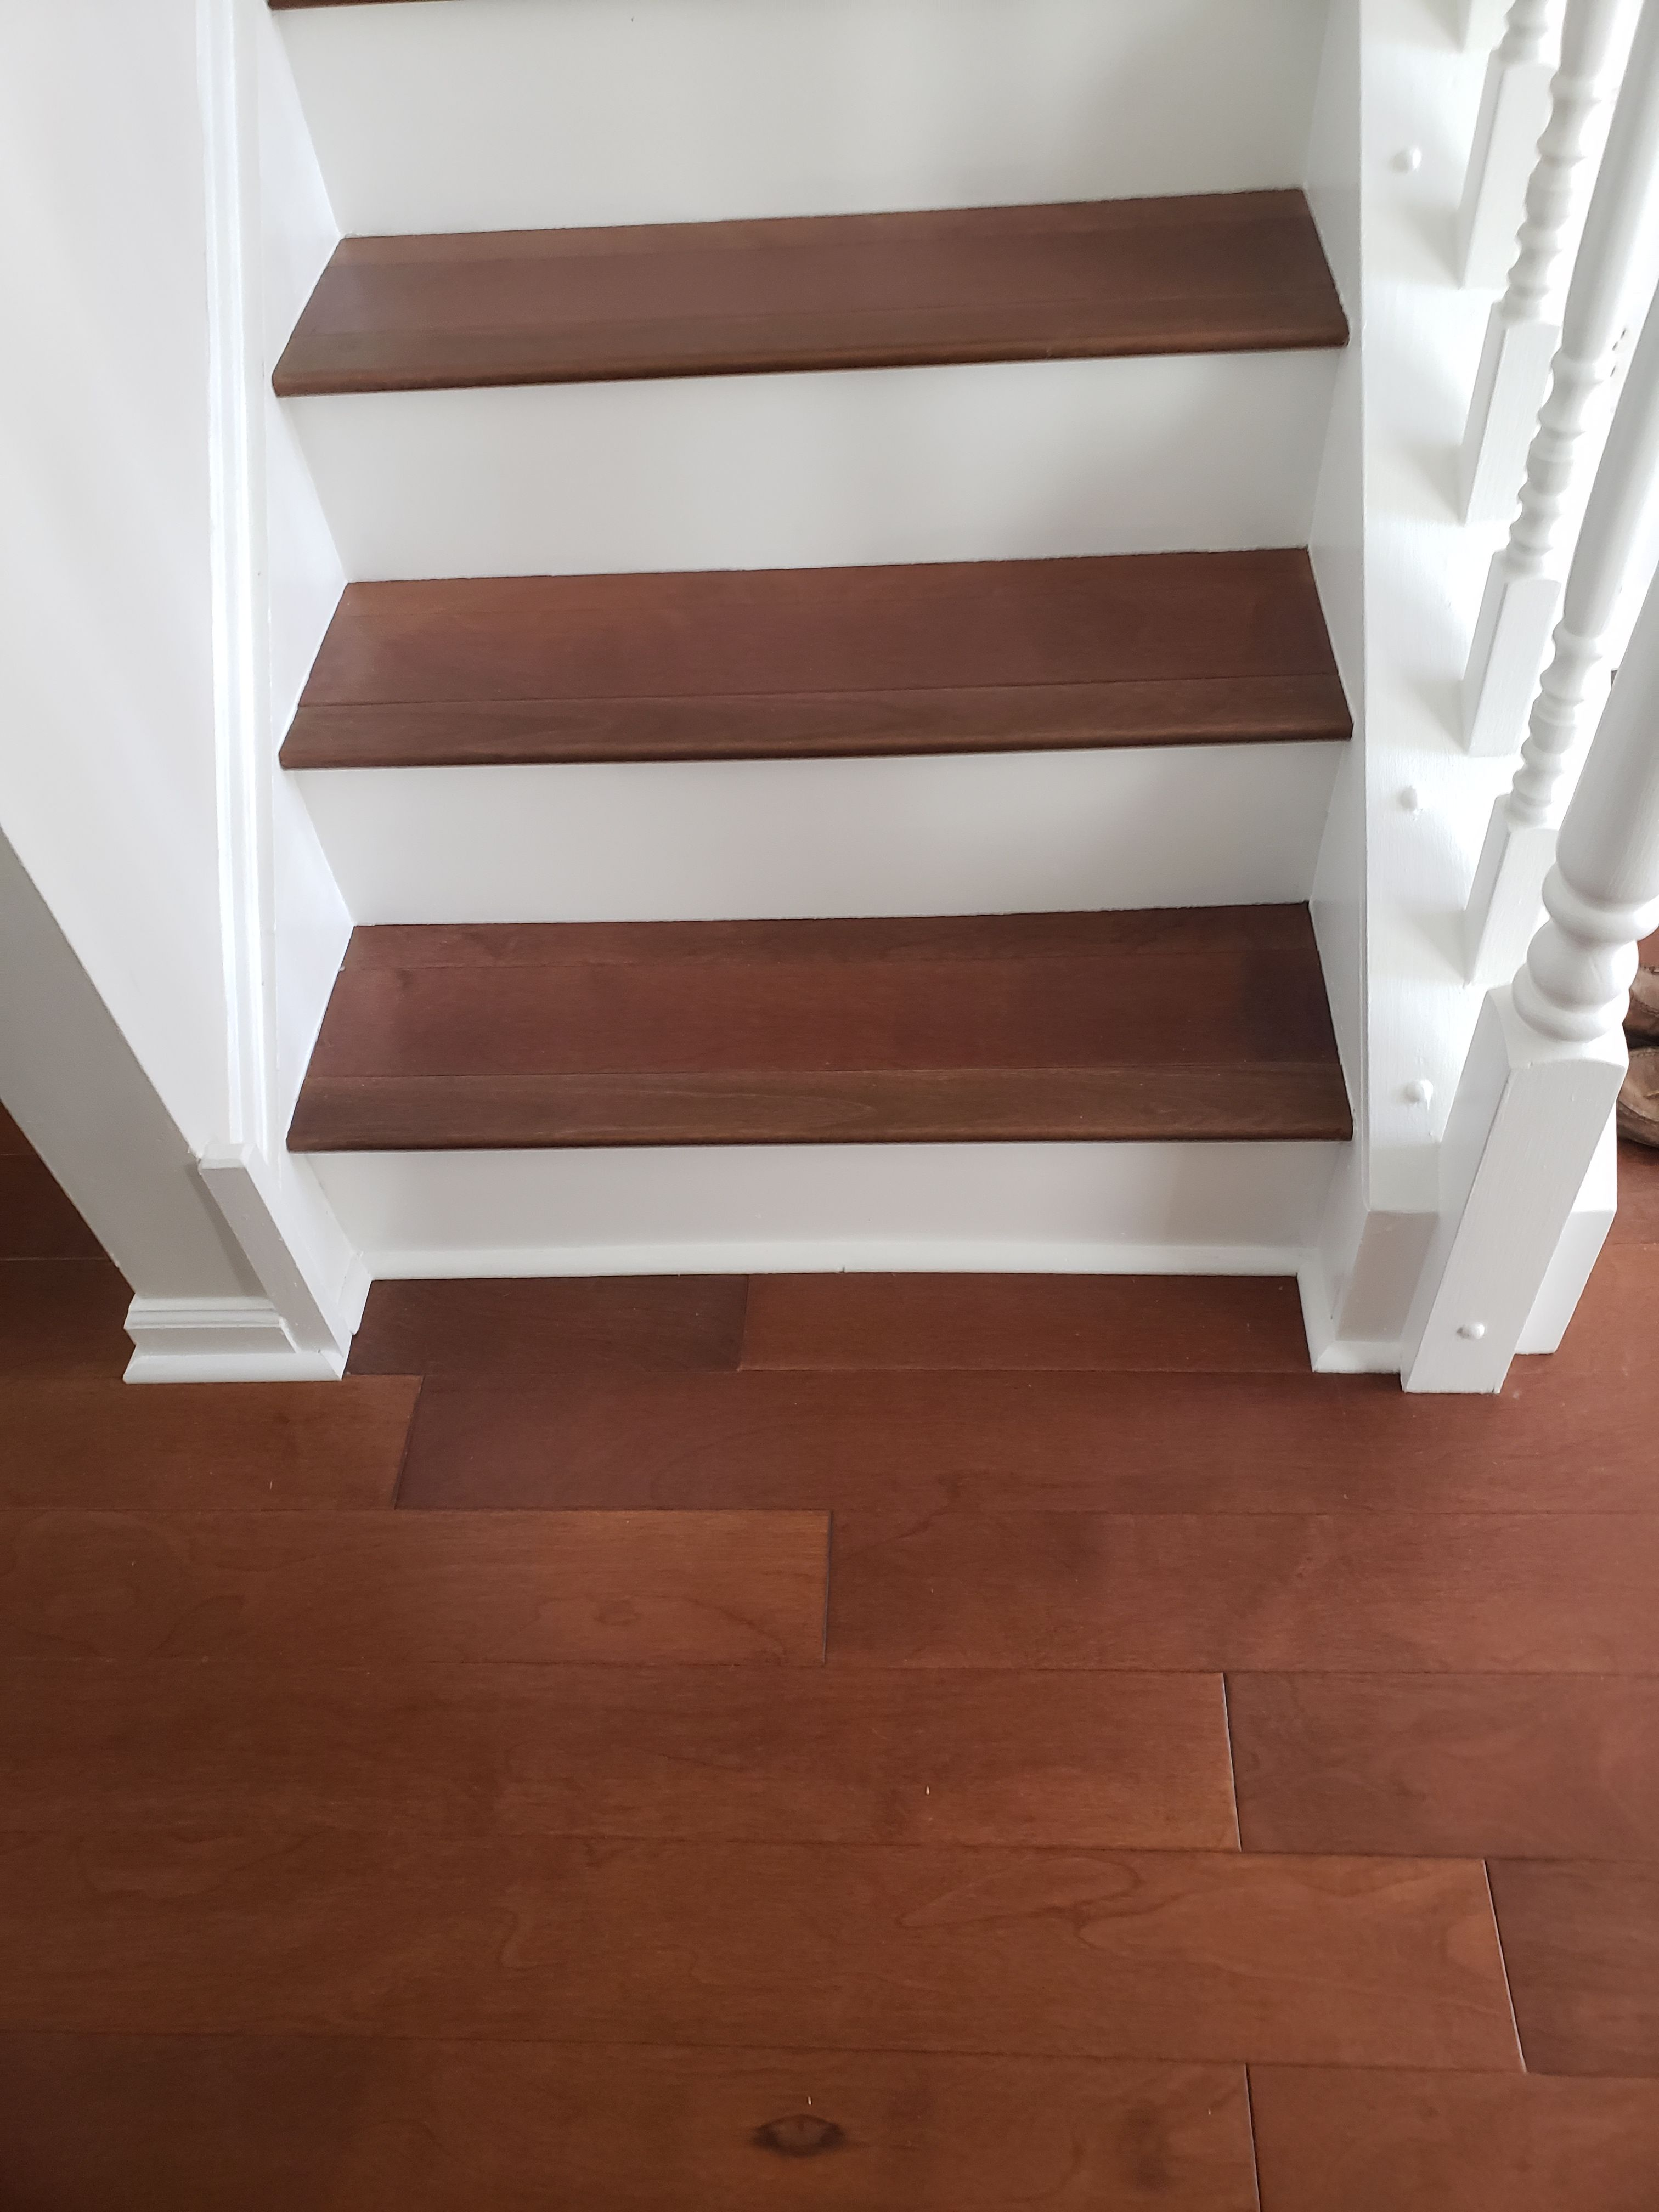 How To Make Stair Treads And Risers